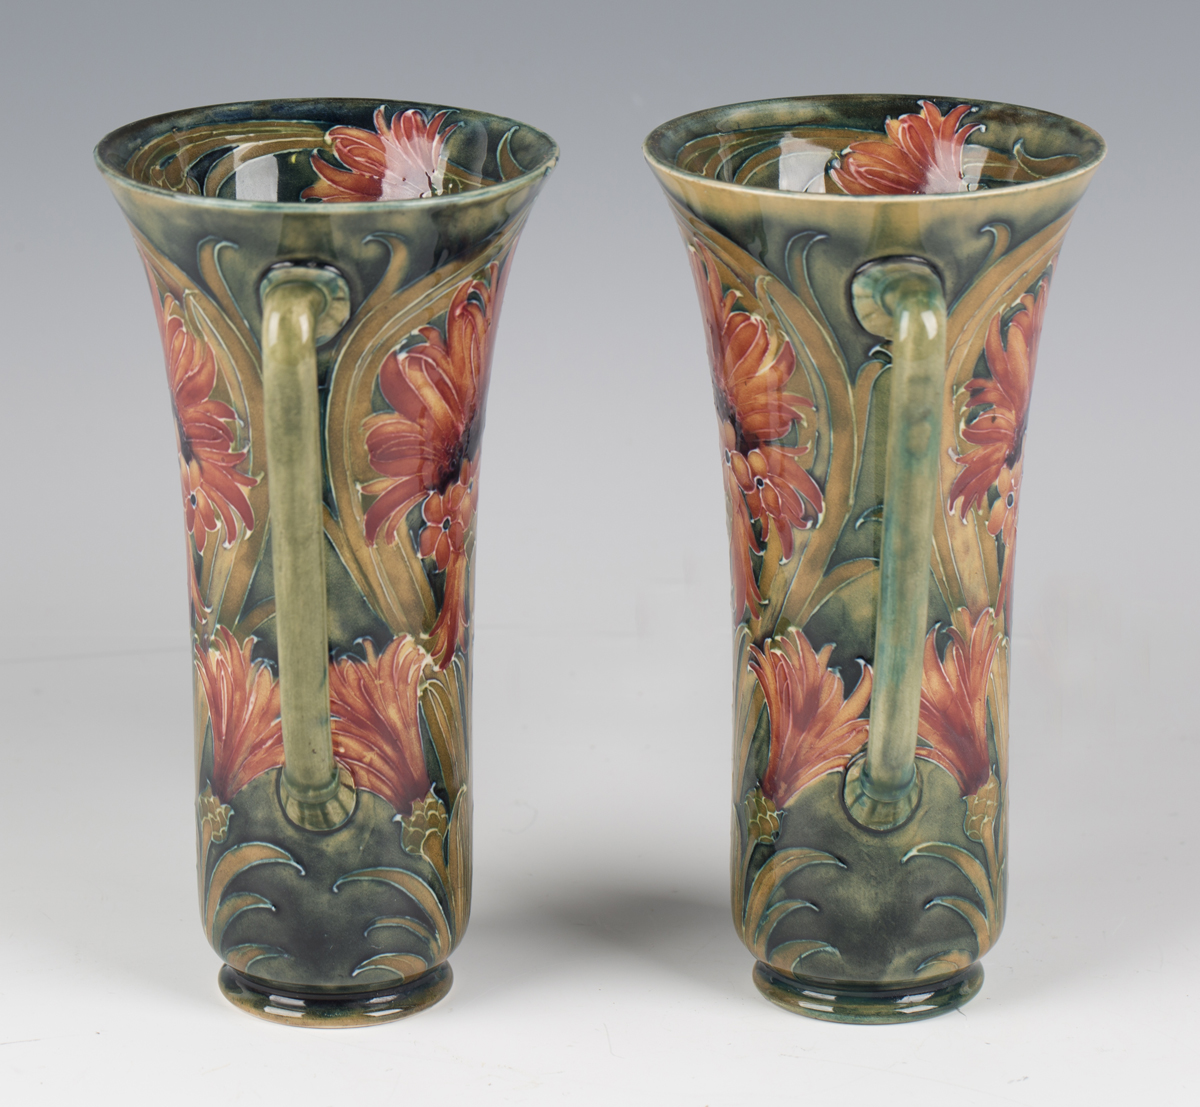 A pair of James Macintyre & Co two-handled pottery vases, circa 1910-13, designed by William - Image 9 of 9